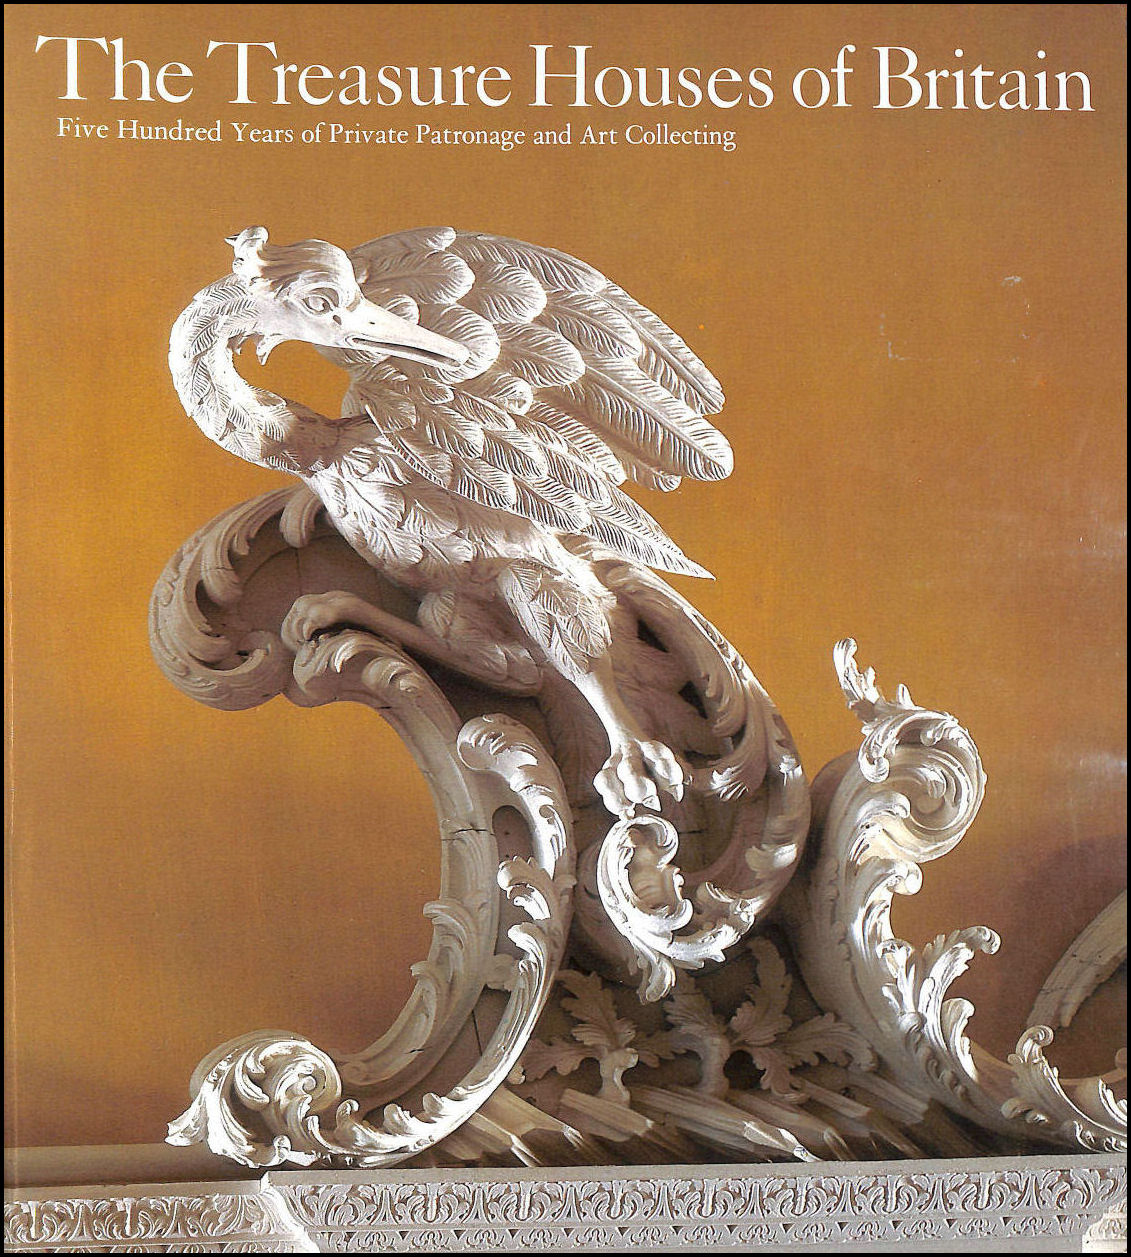 Image for The Treasure Houses of Britain: 500 Years of Private Patronage and Art Collecting